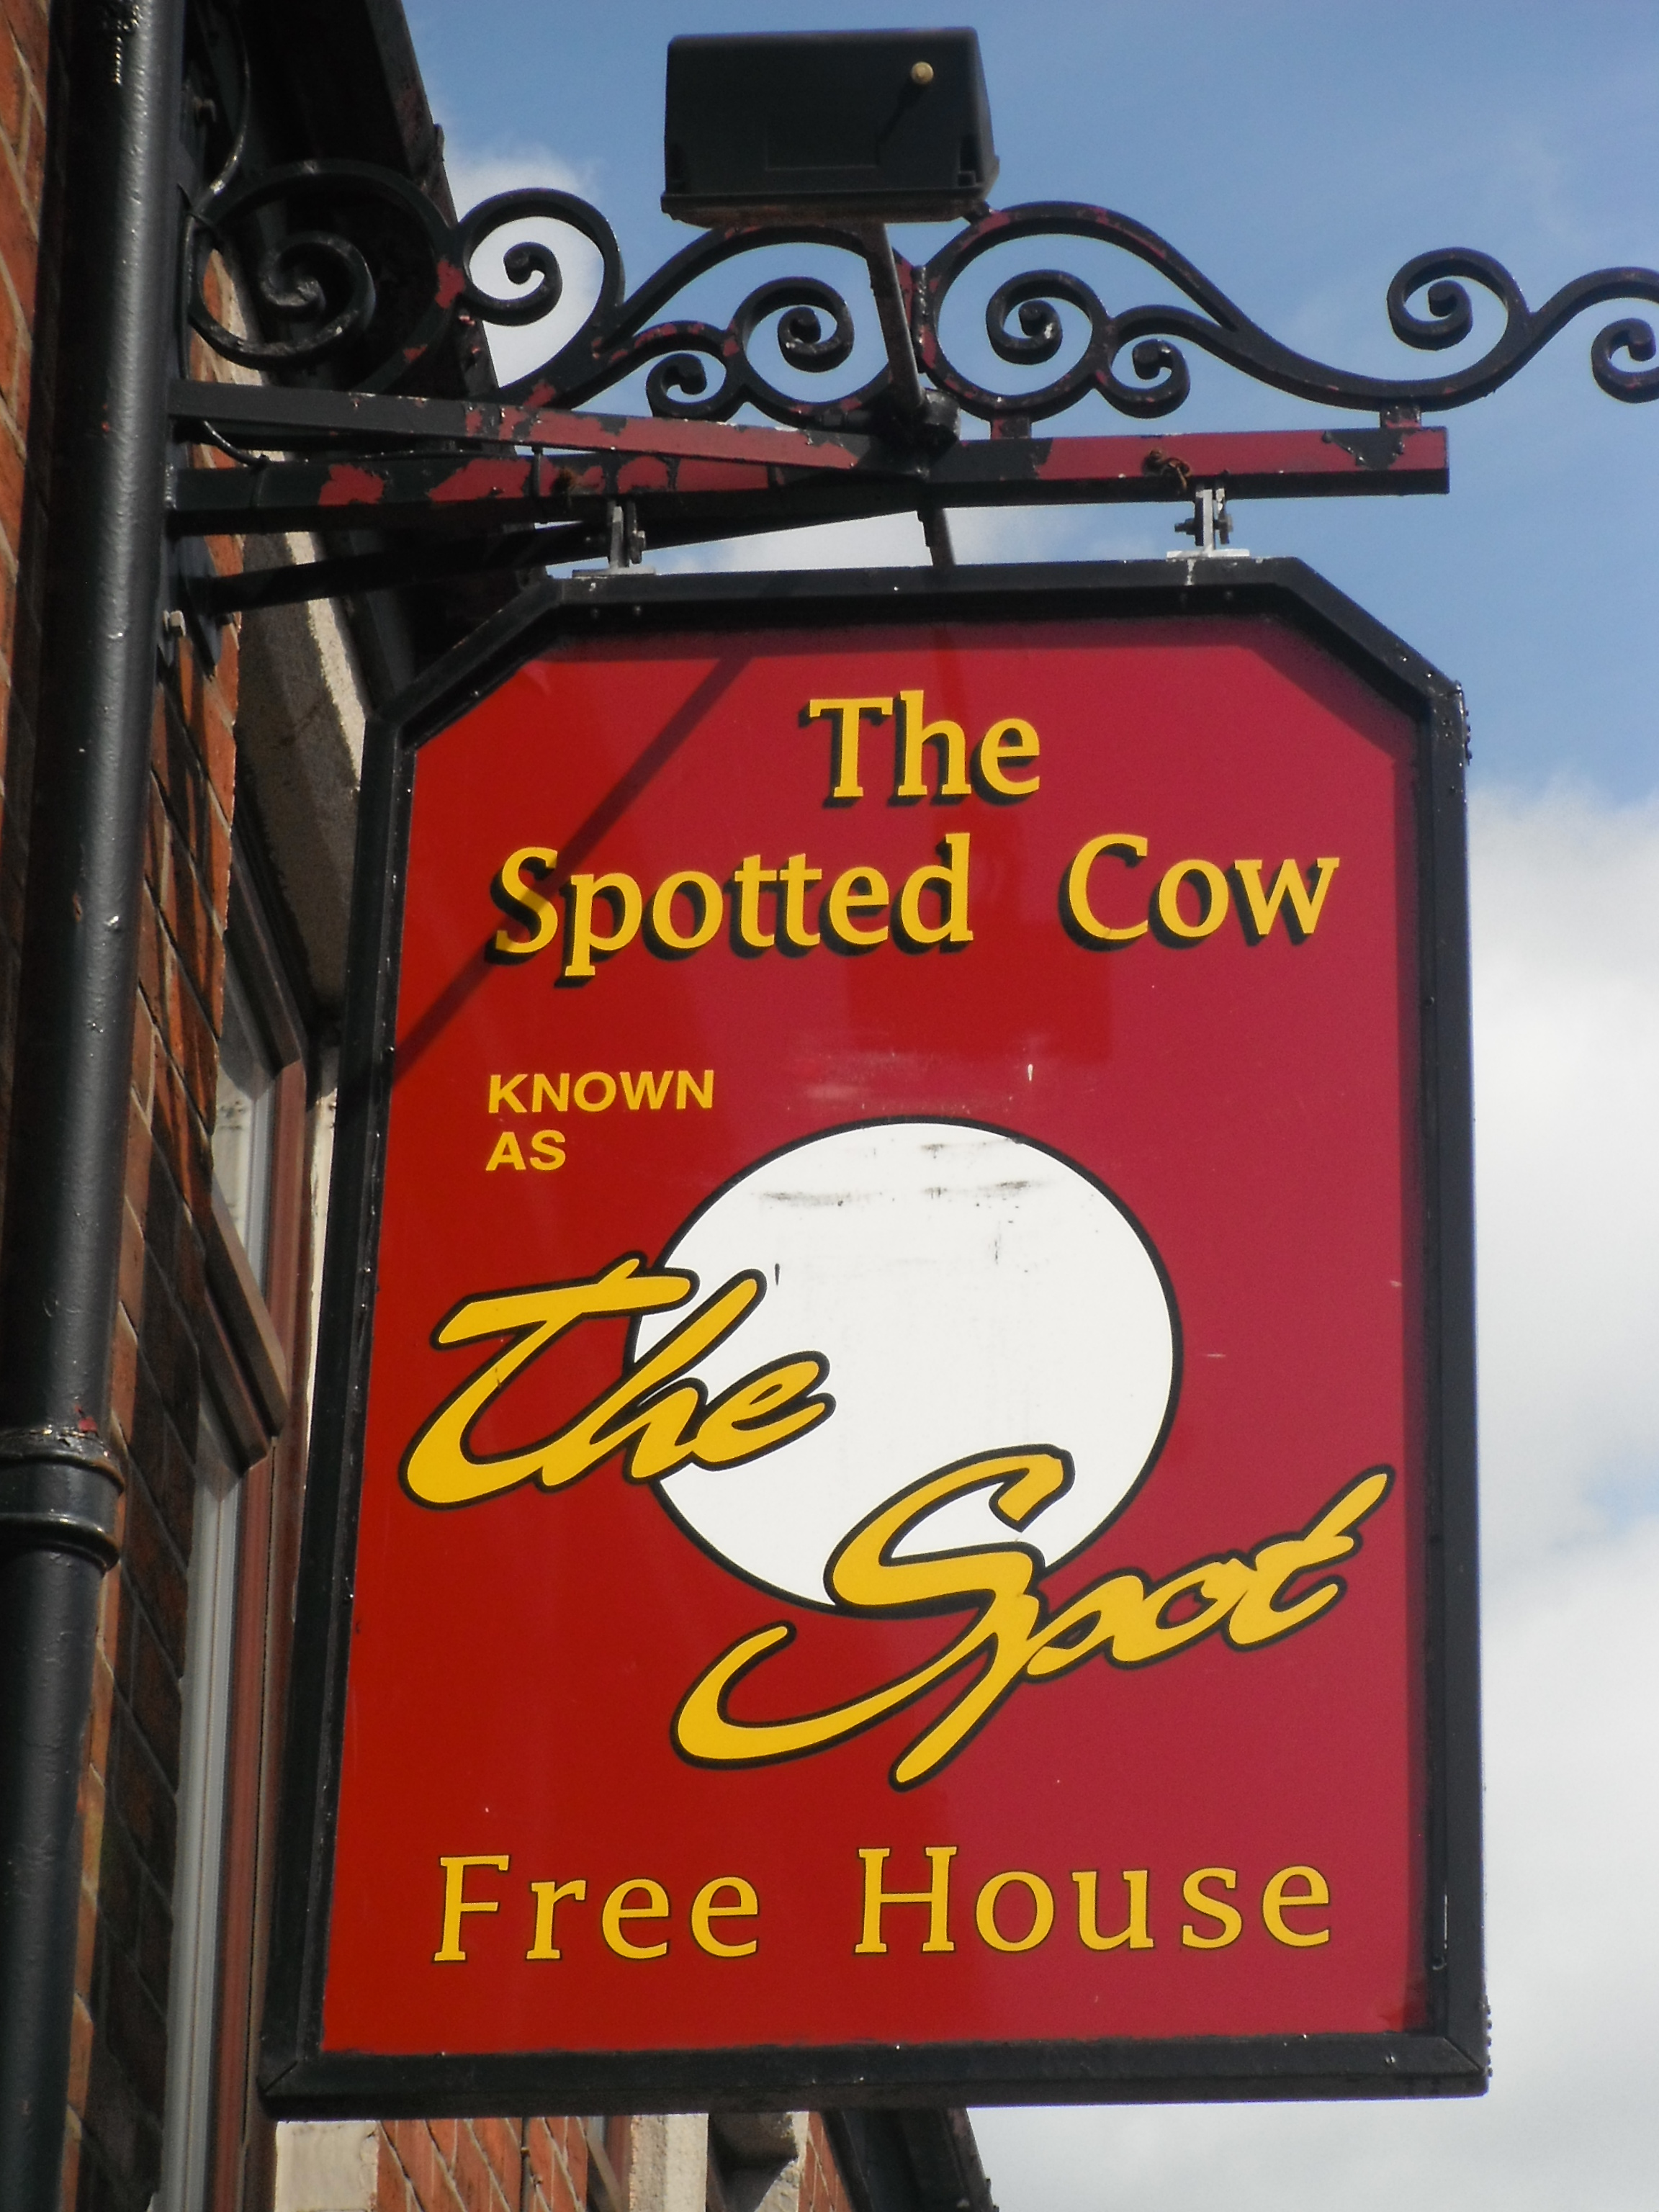 Photo taken by me – The Spotted Cow pub sign, Bury, Manchester